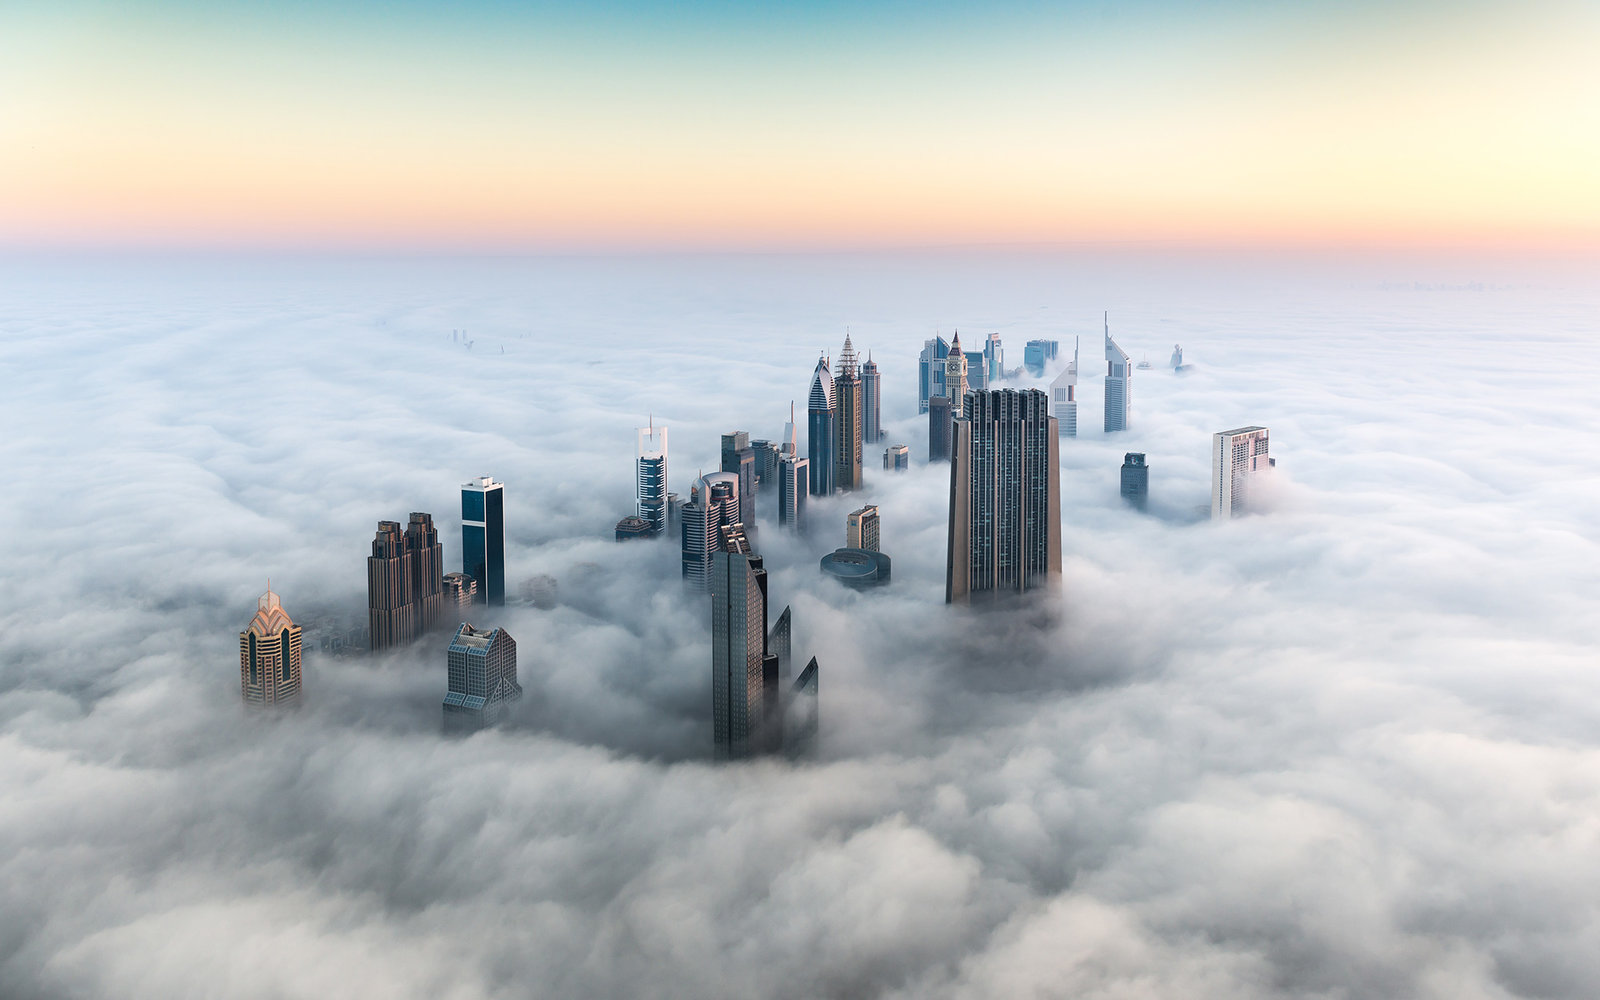 Dubai Emerging From The Fog